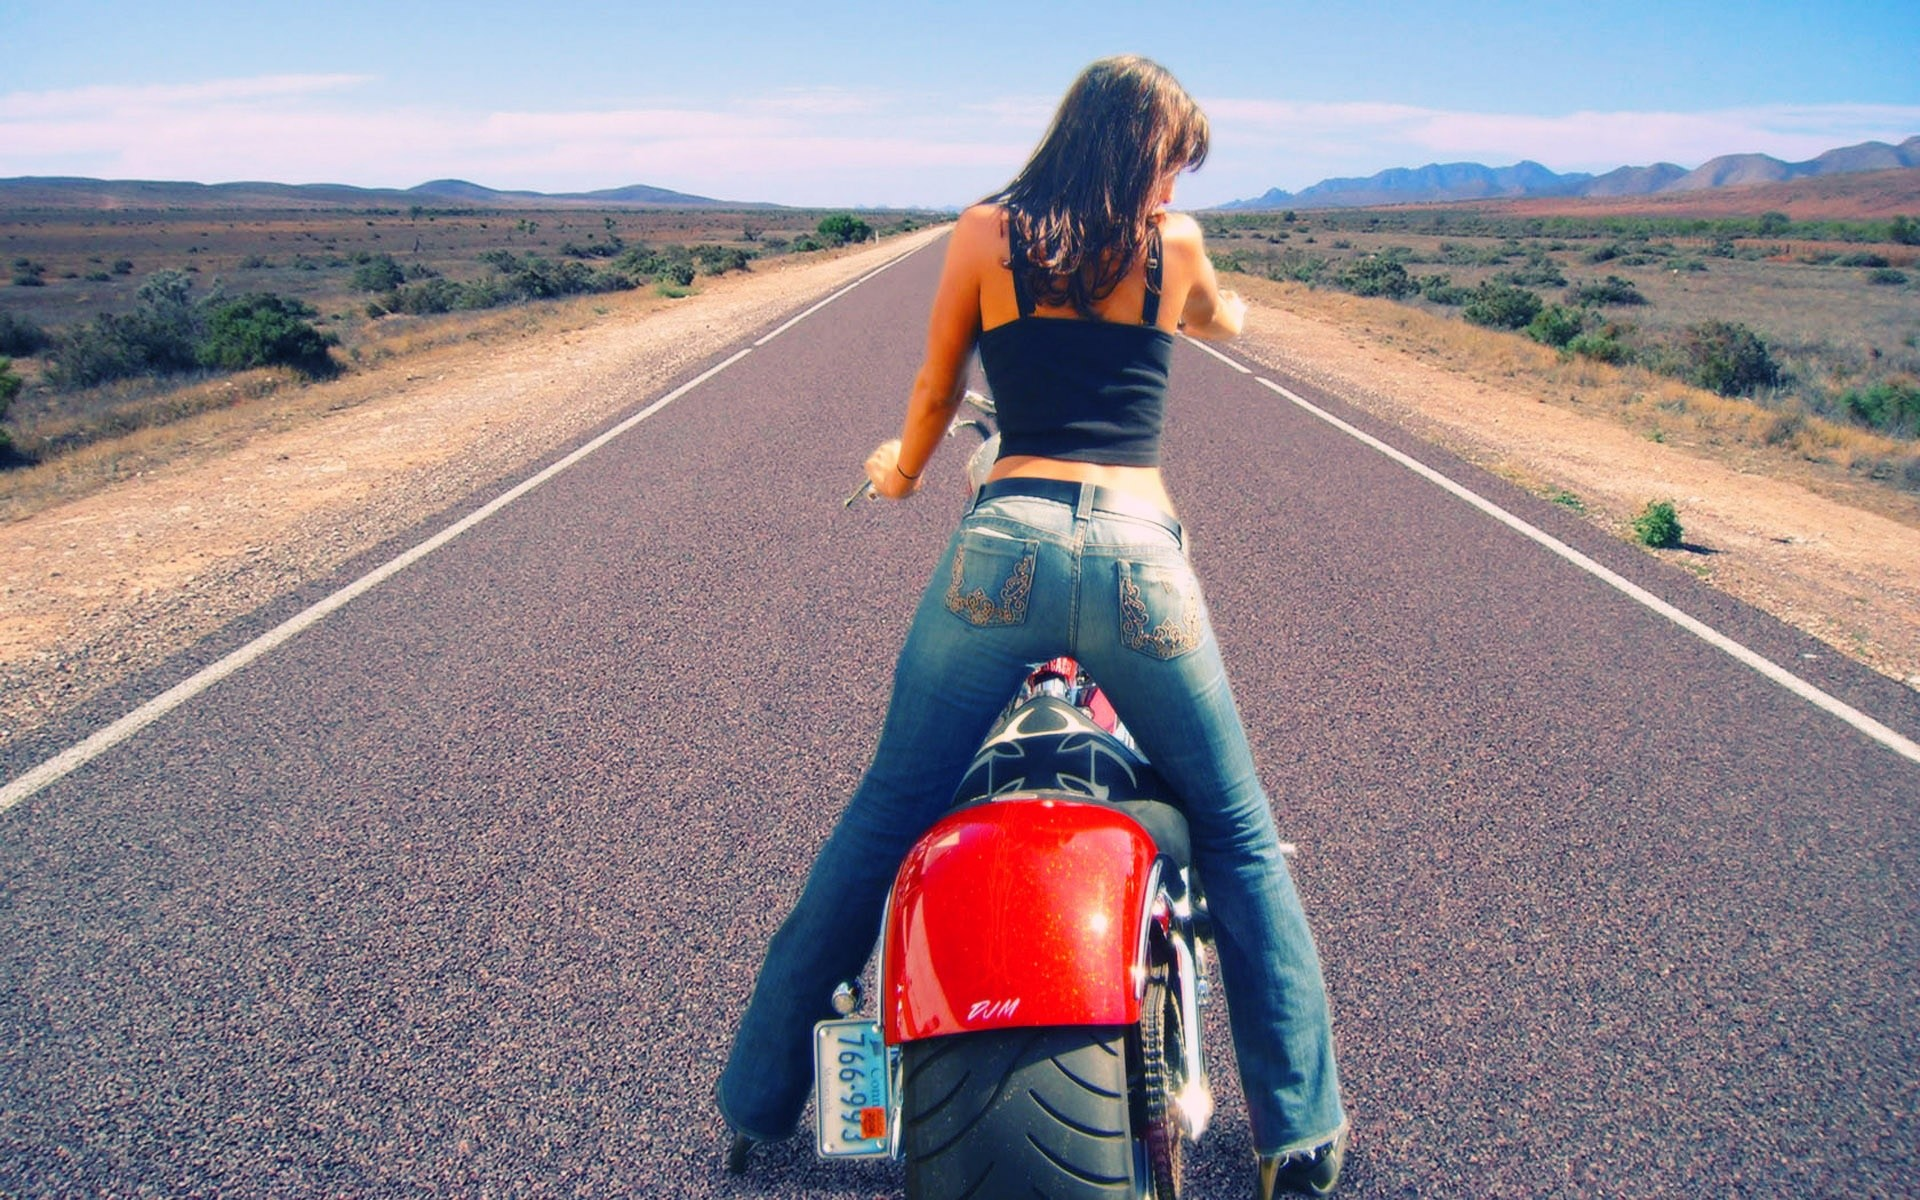 Girls on Motorcycles Wallpapers